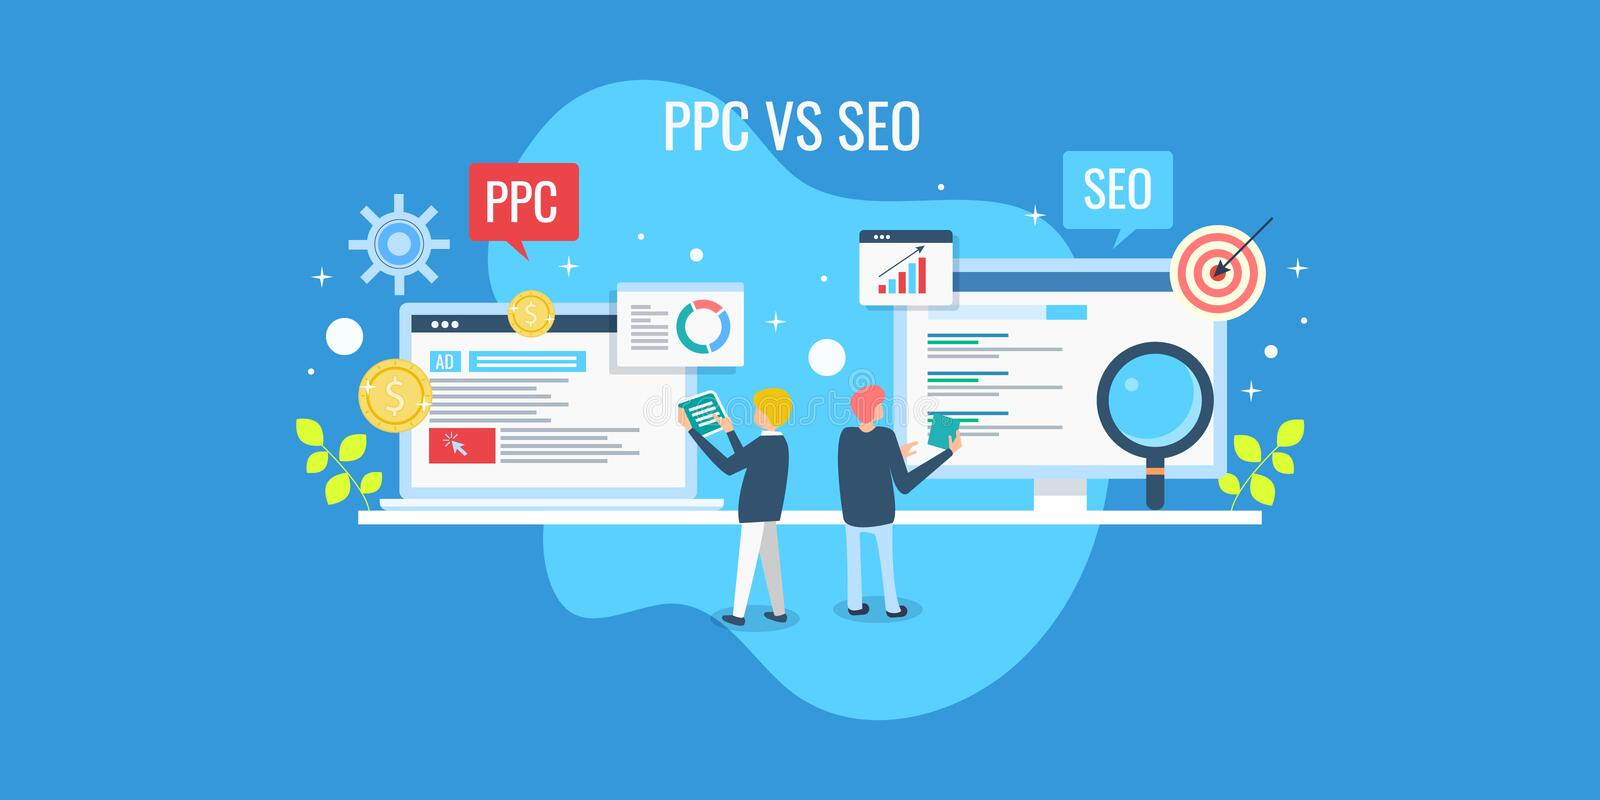 Business team analyzing ppc and seo performance result, comparison of search marketing and seo optimization concept. royalty free illustration